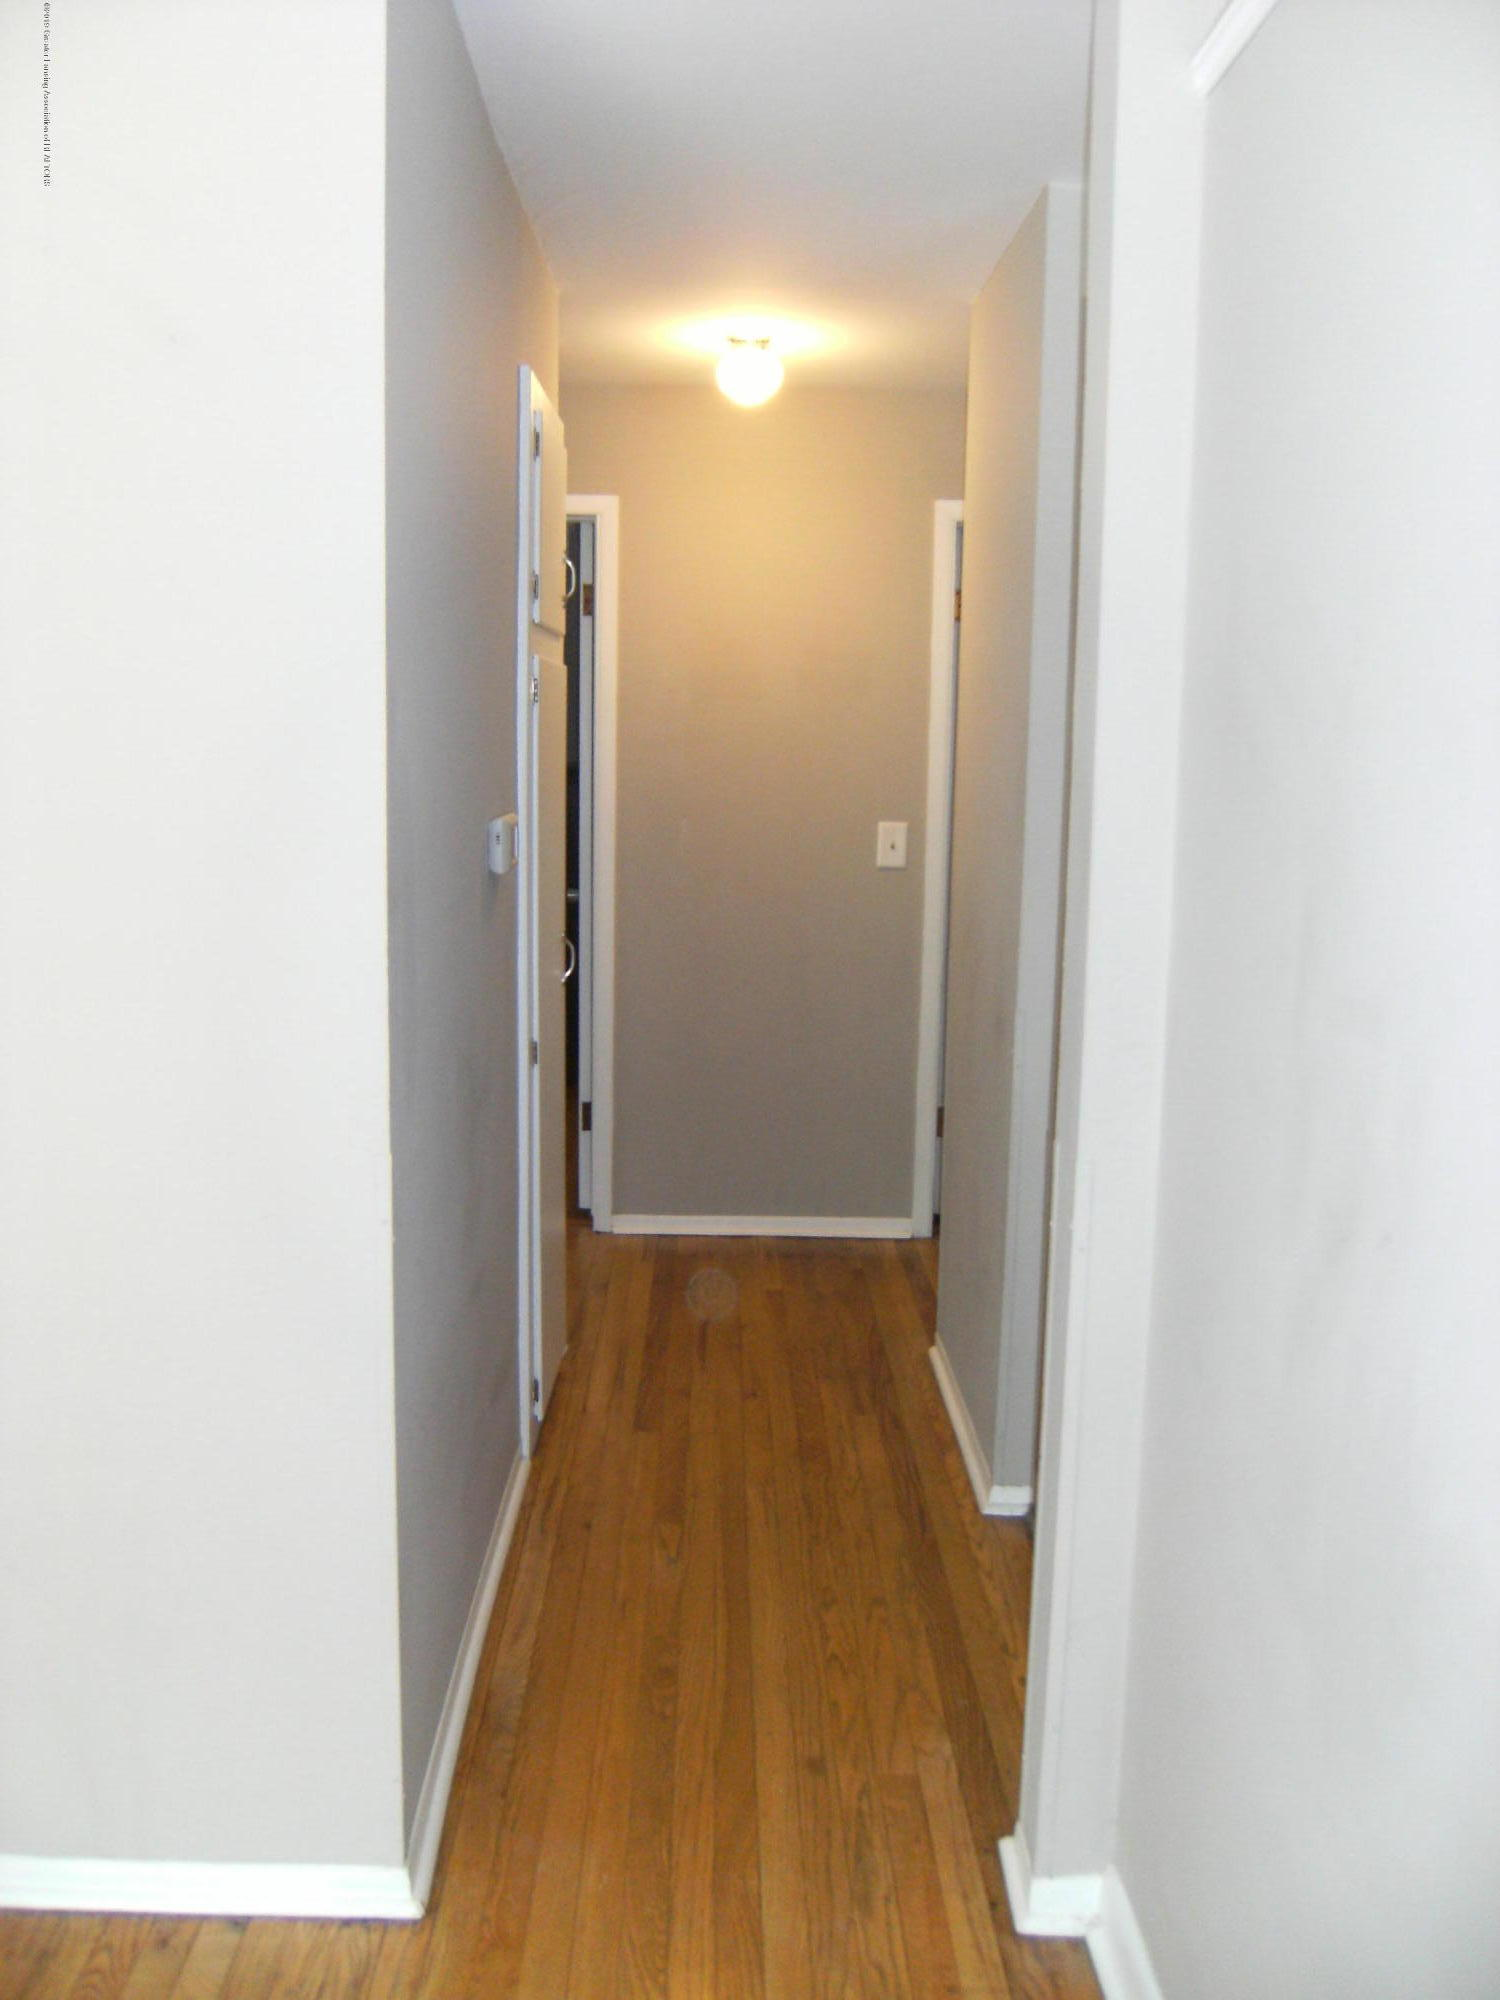 1315 N Foster Ave - Hallways to bedroom and bathroom - 11